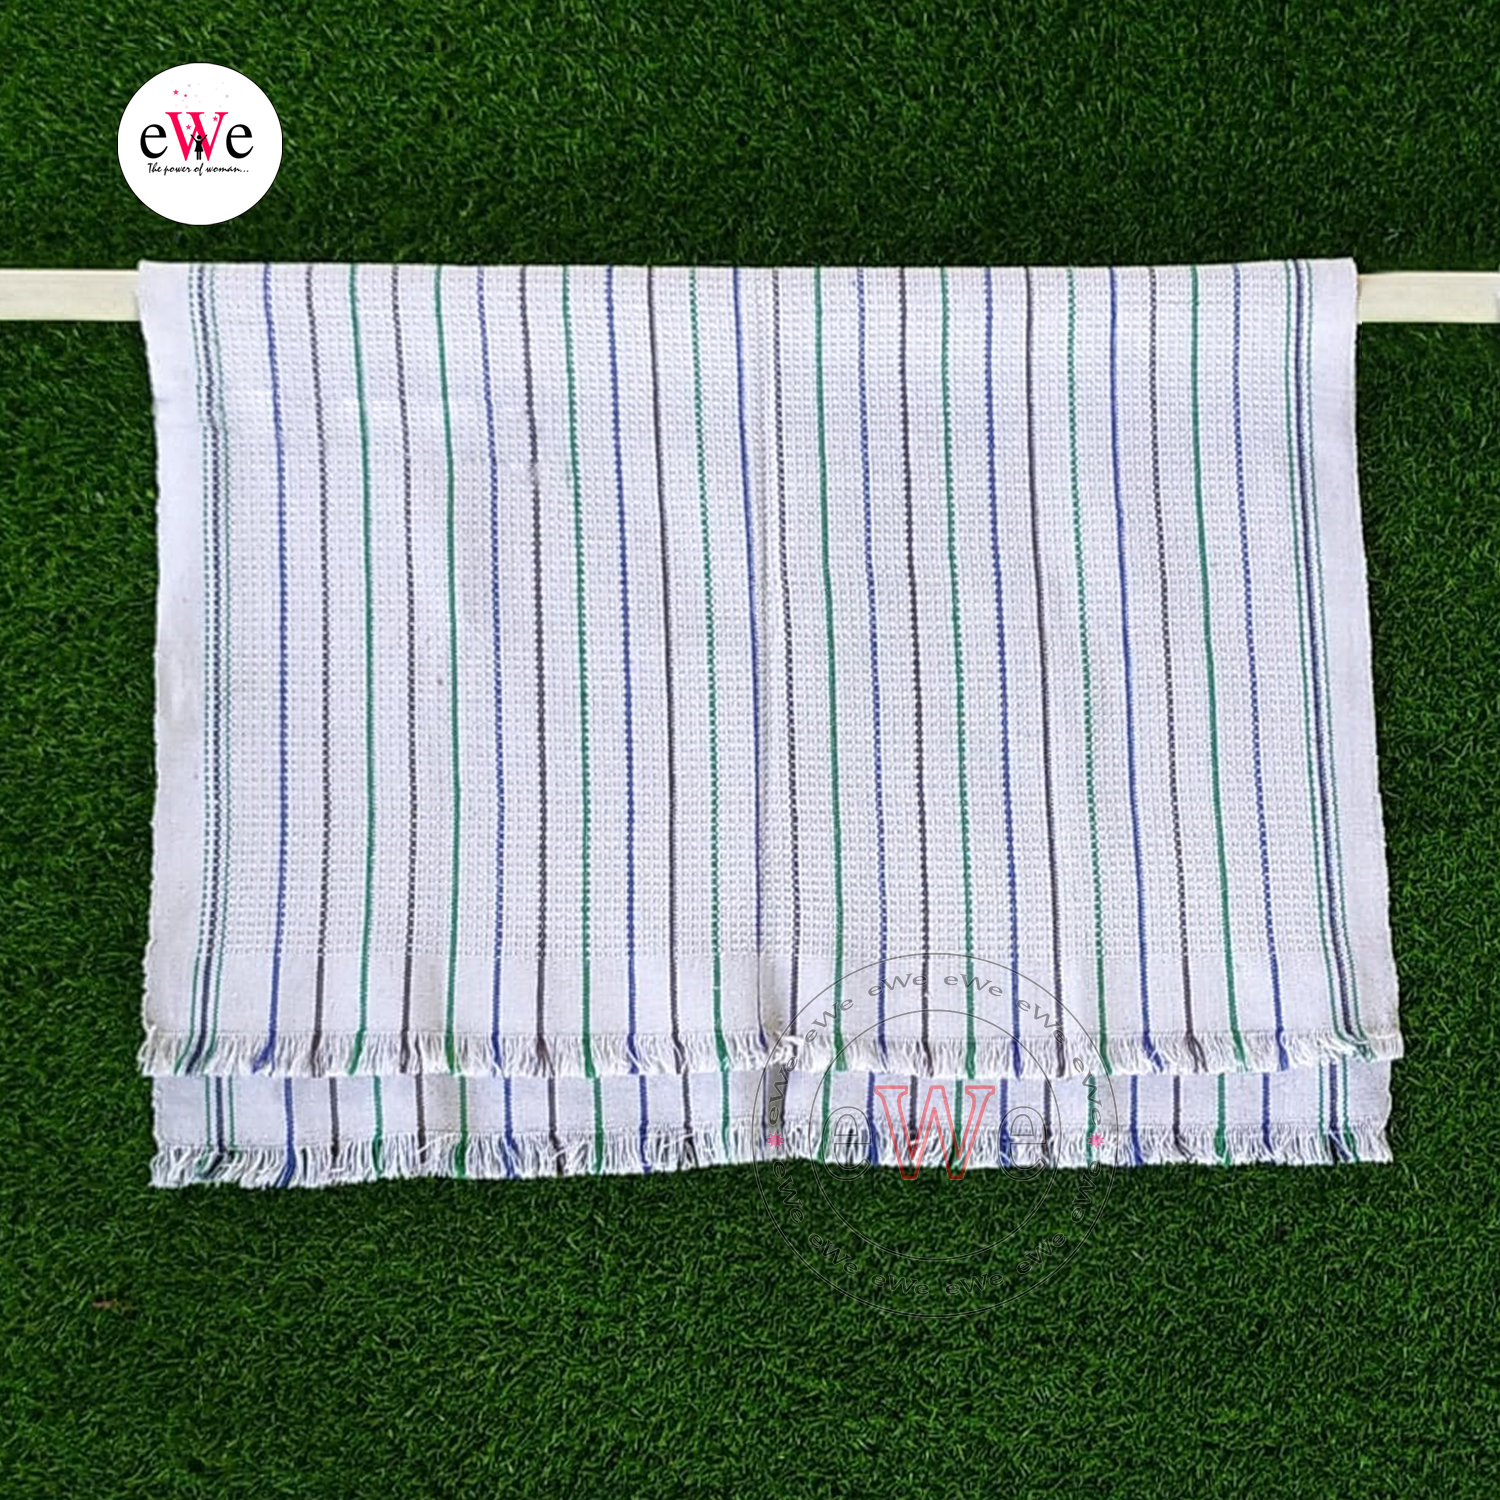 Strips Khadi Cotton Extra Length Washed Kitchen Towel Combo Set Pack of 2 Pieces (90 cm x 65 cm)